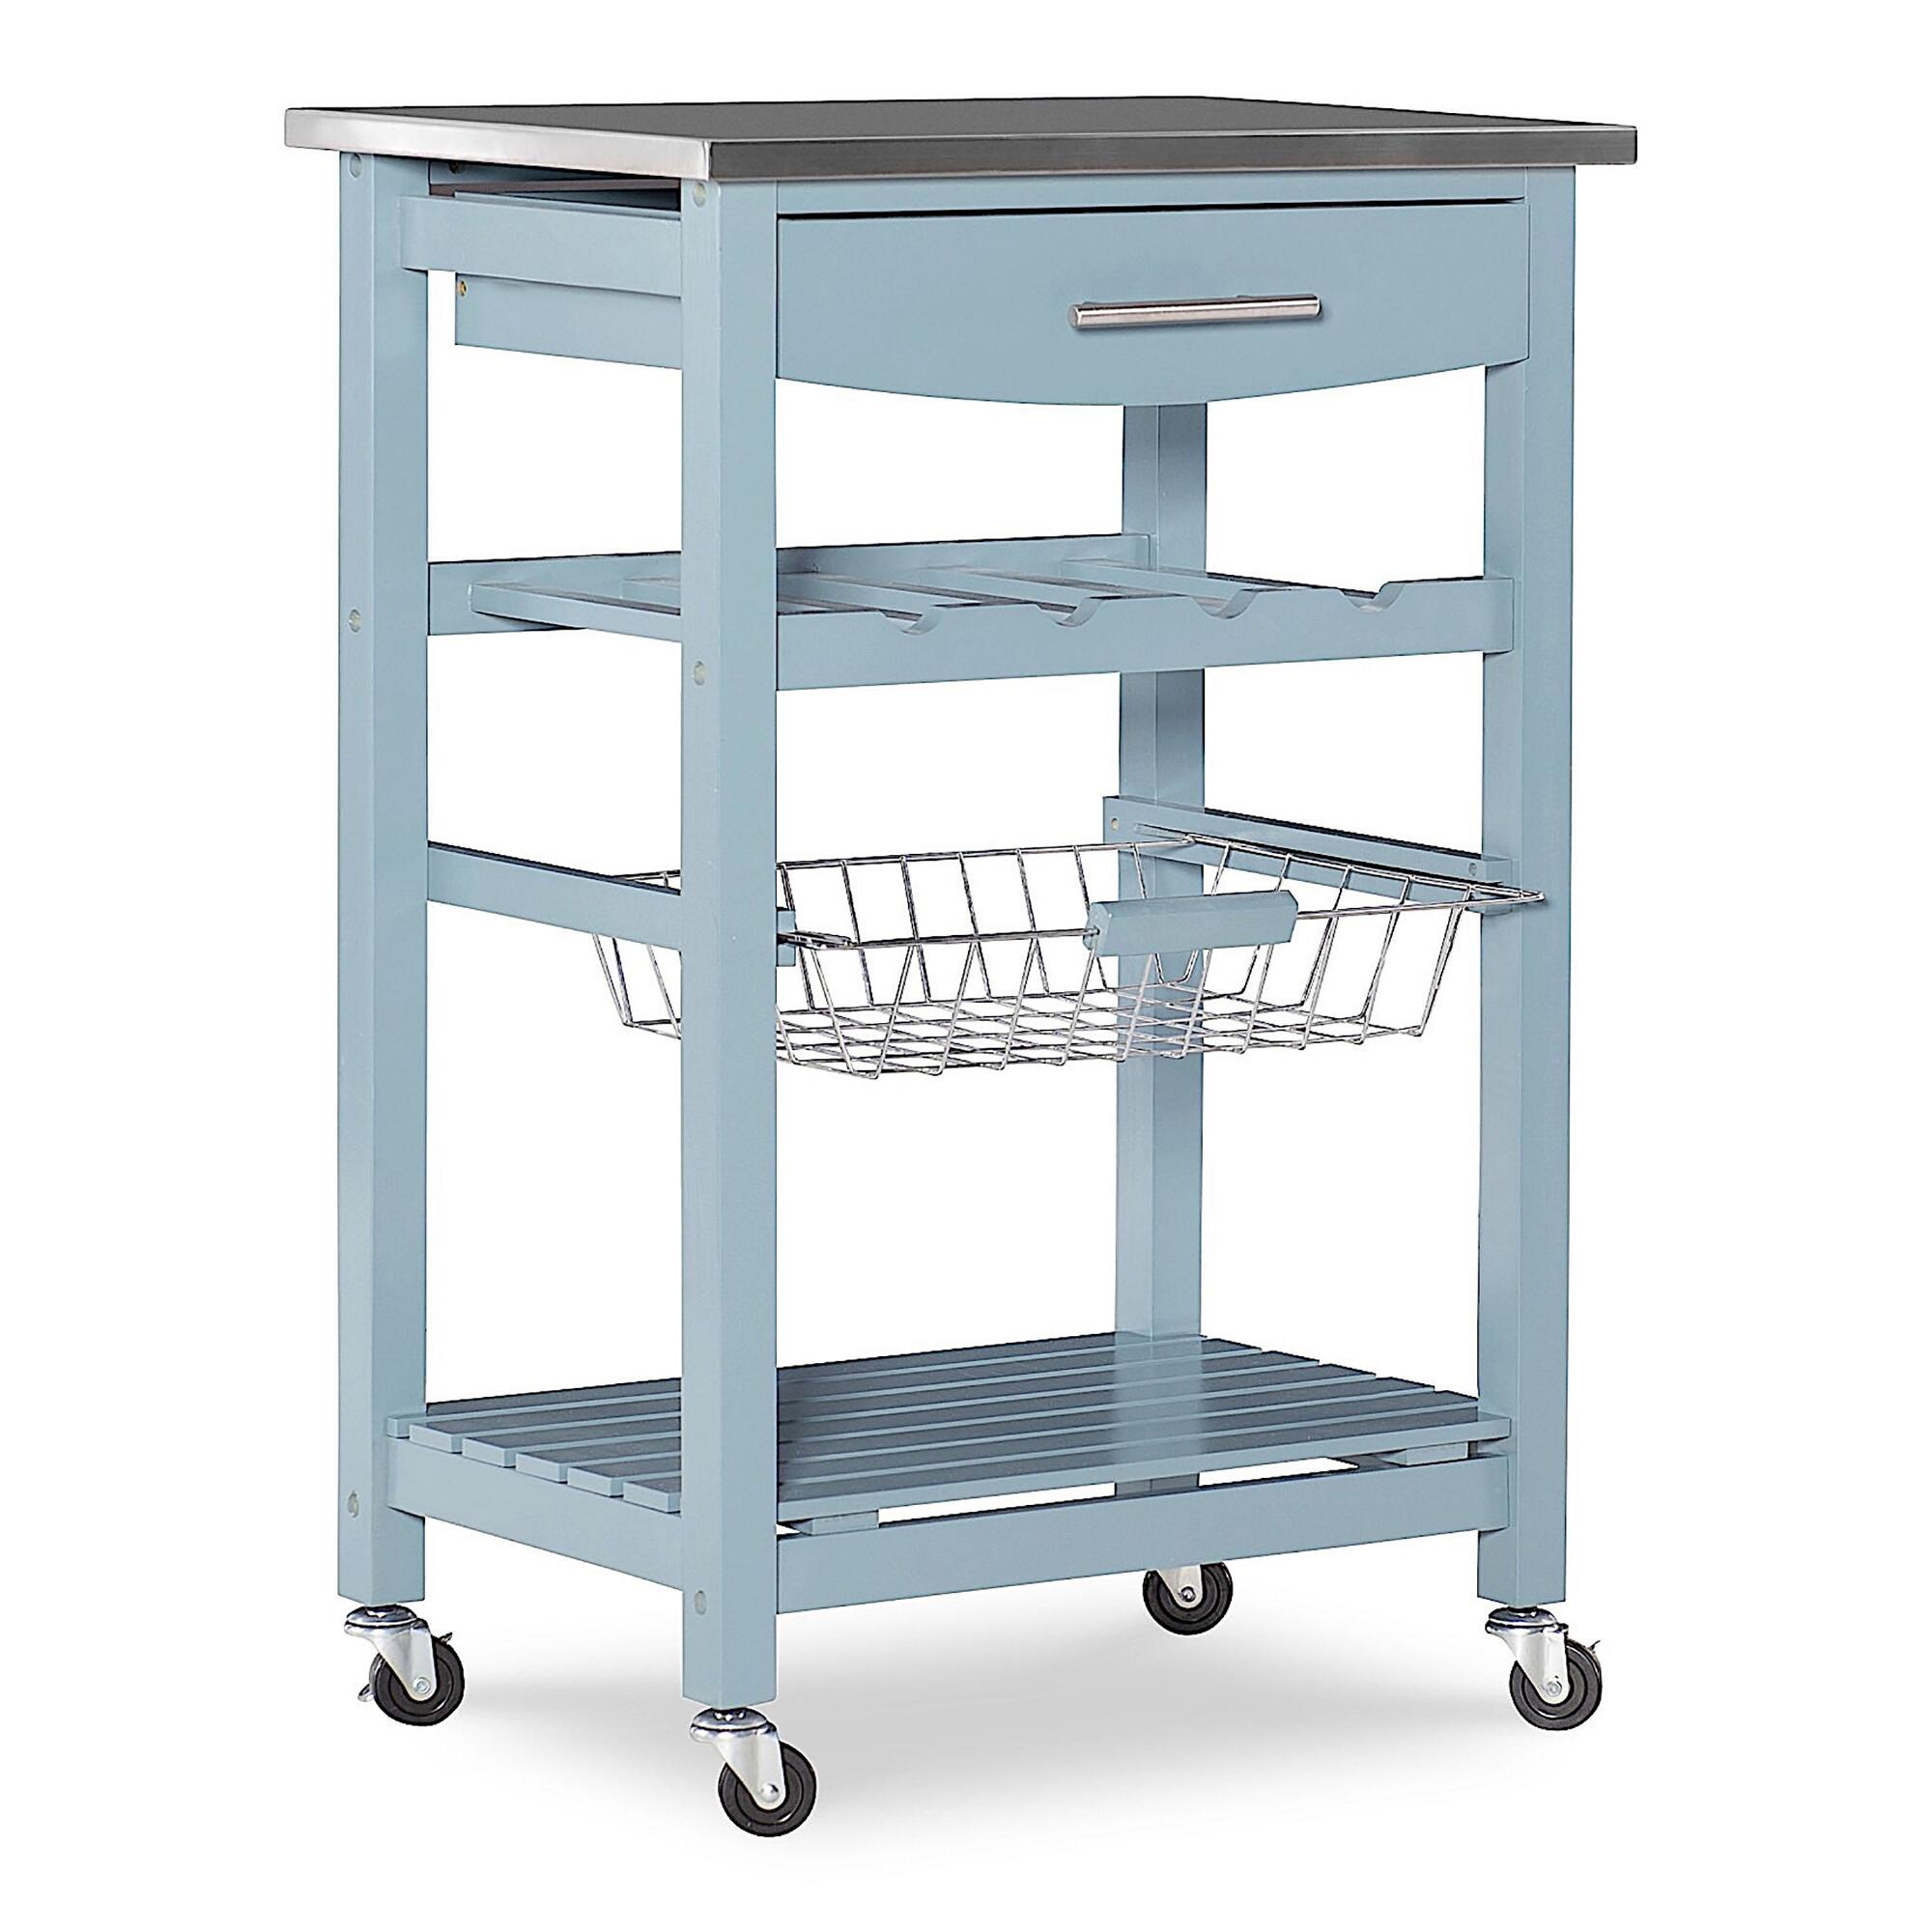 Blue Wood and Stainless Steel Grover Kitchen Cart by World Market